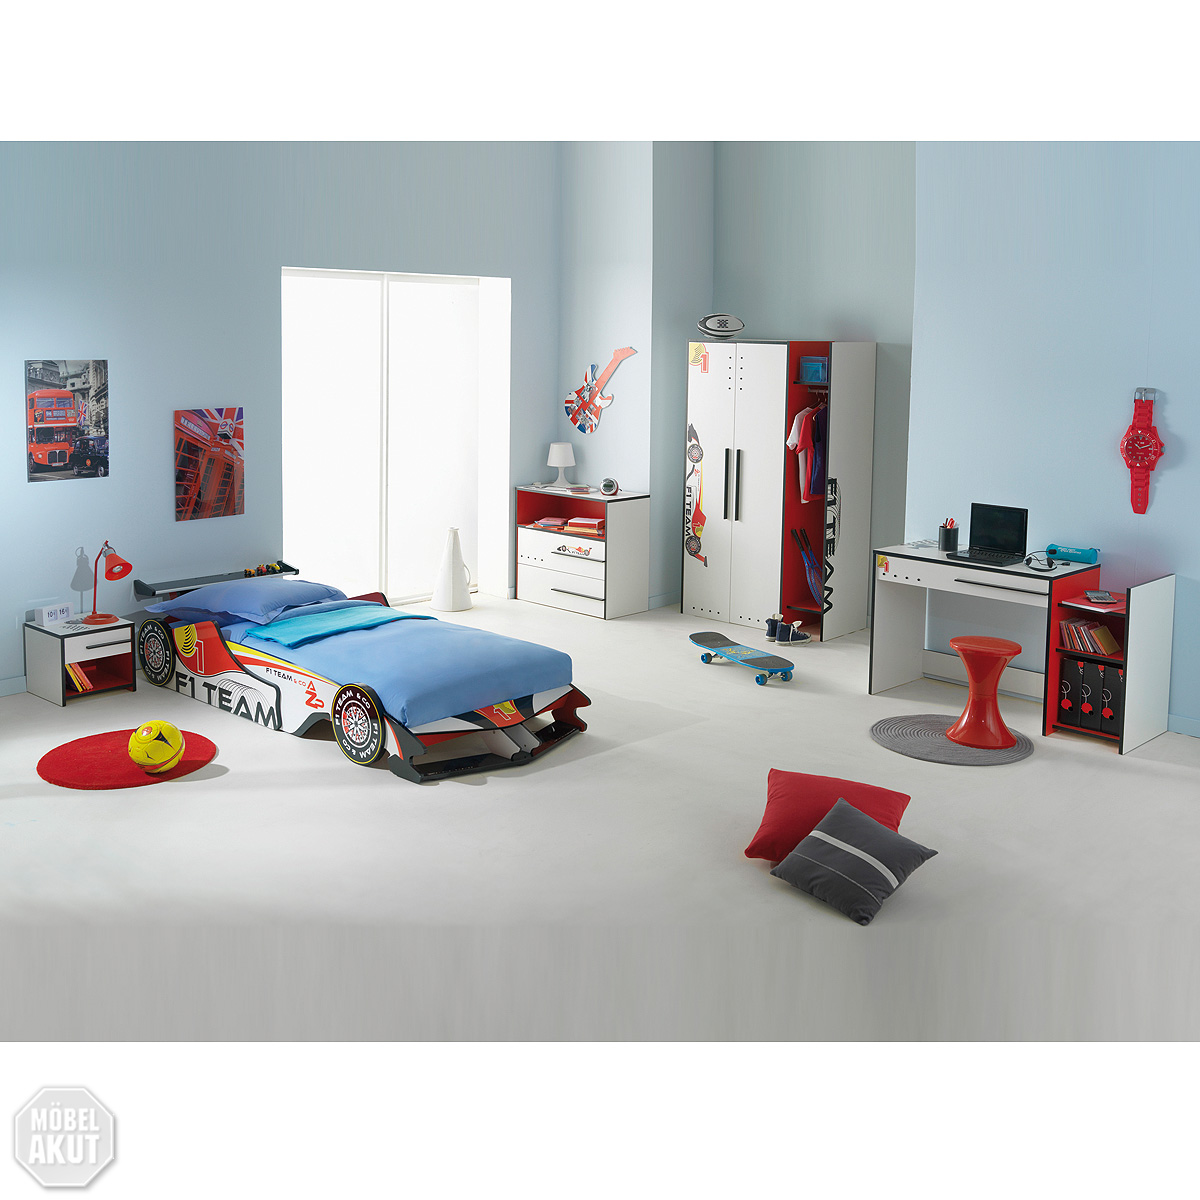 kinderzimmer komplett angebote auf waterige. Black Bedroom Furniture Sets. Home Design Ideas